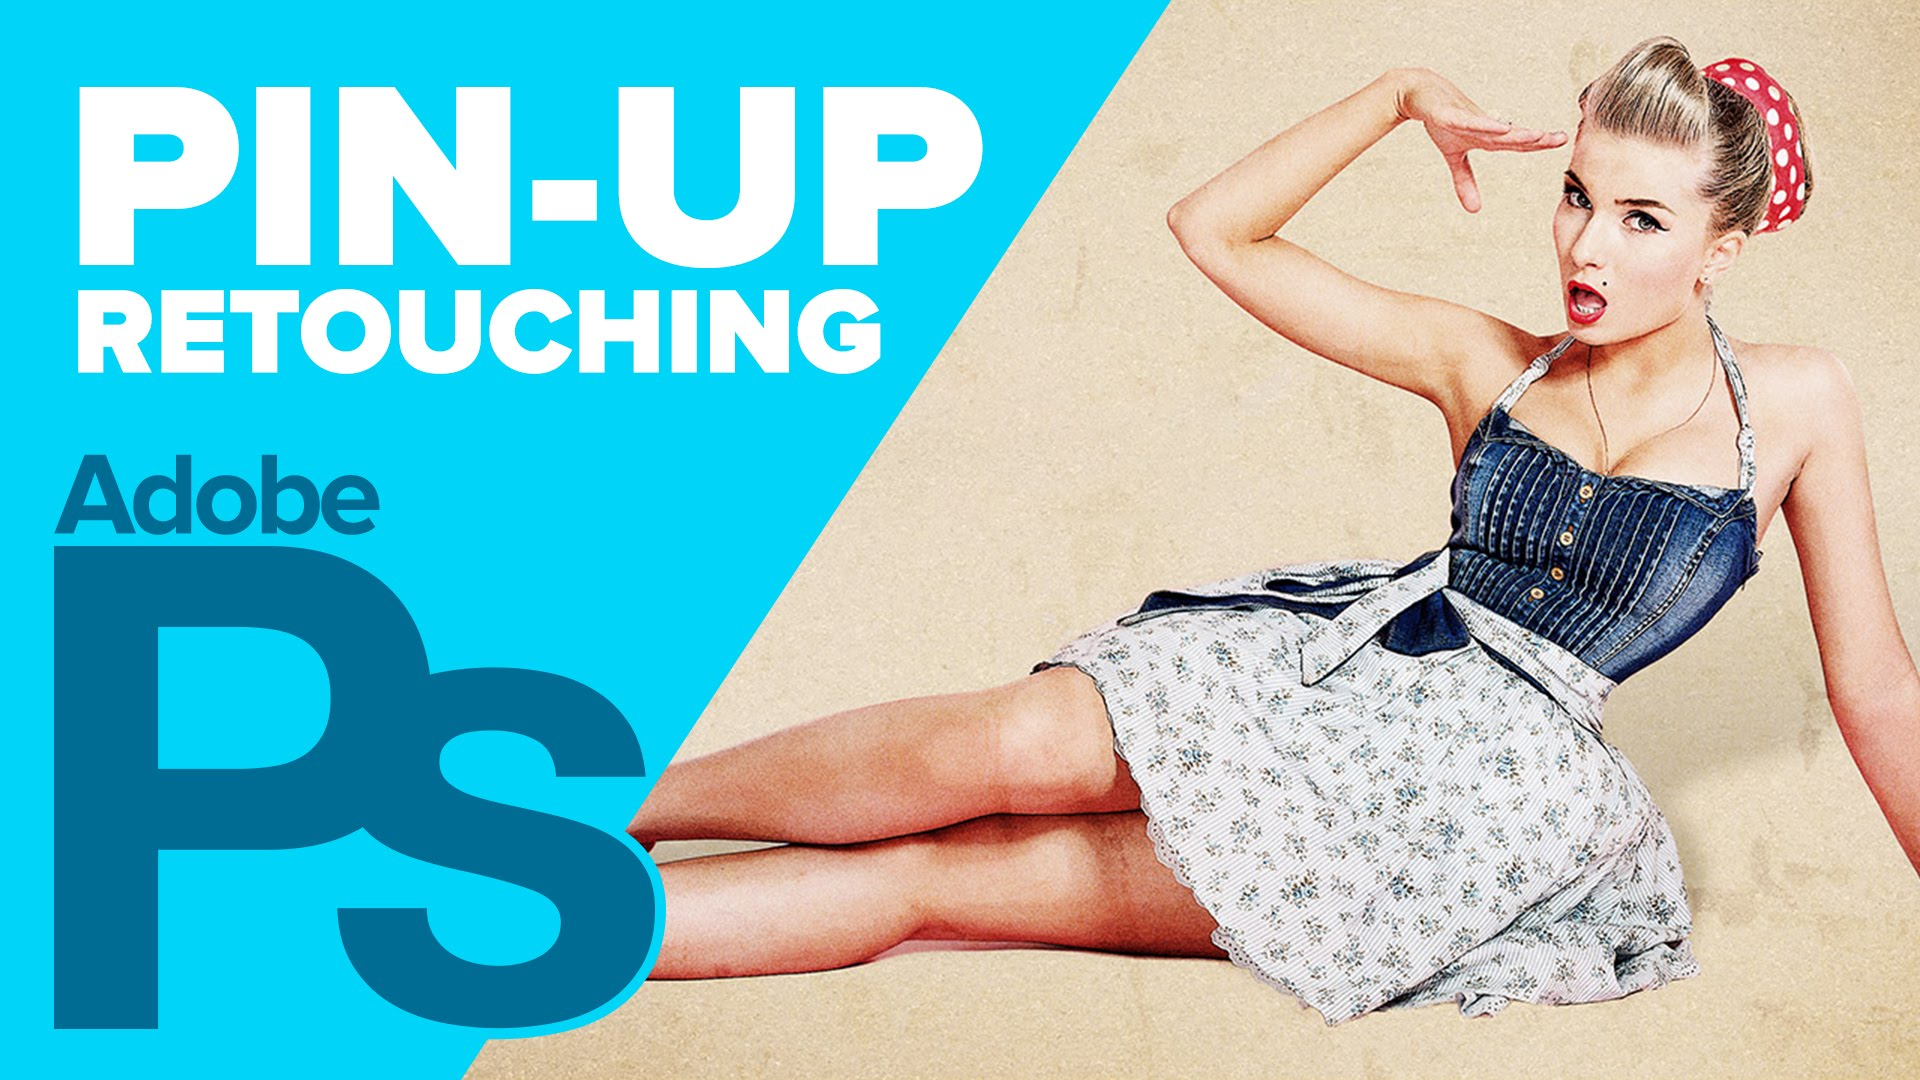 Drawn pin up  poster Photoshop YouTube Up Up a